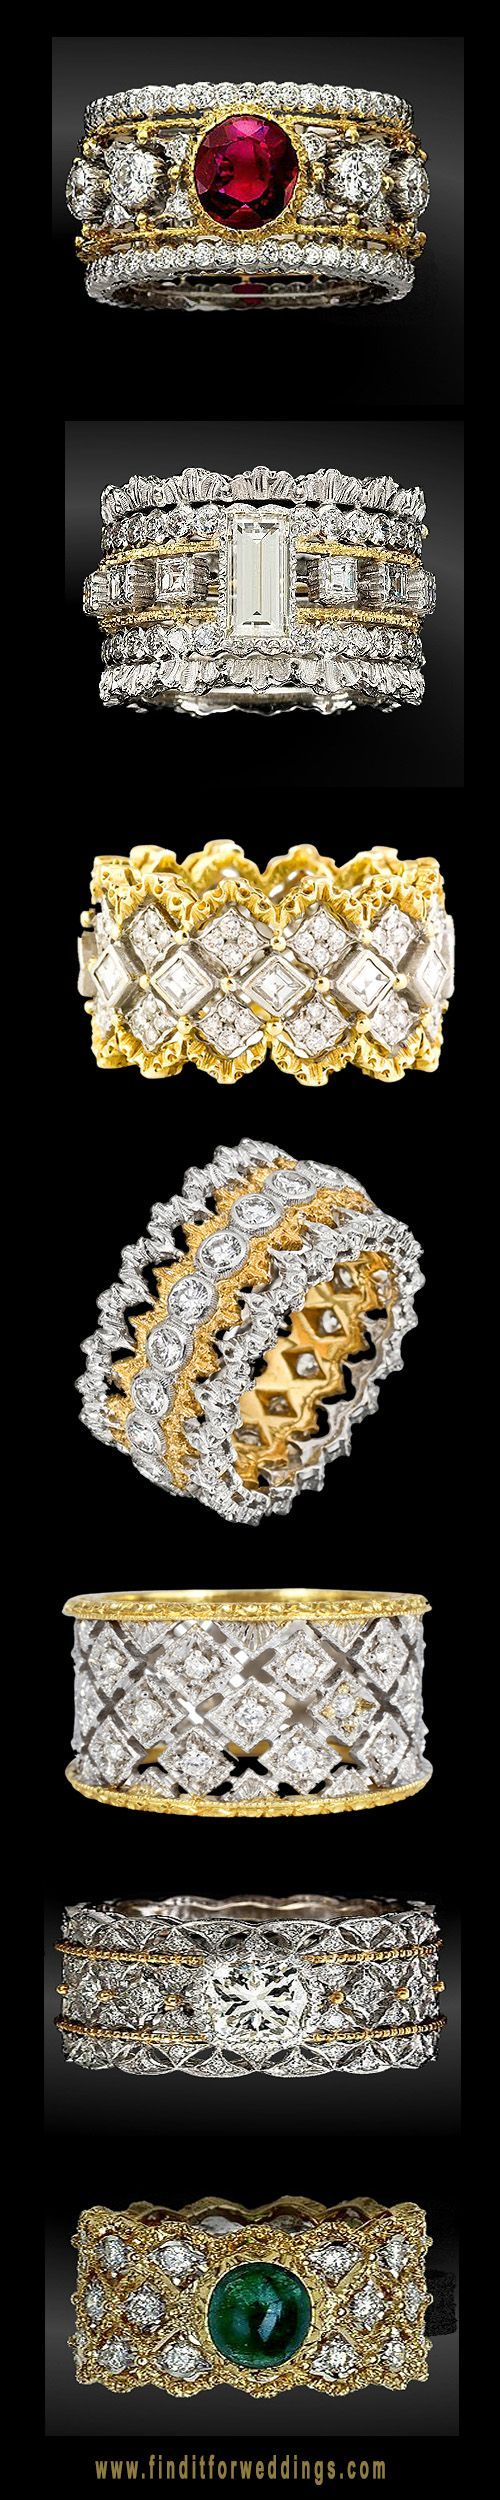 Buccellati rings #jewels #jewellery #rubies #diamonds